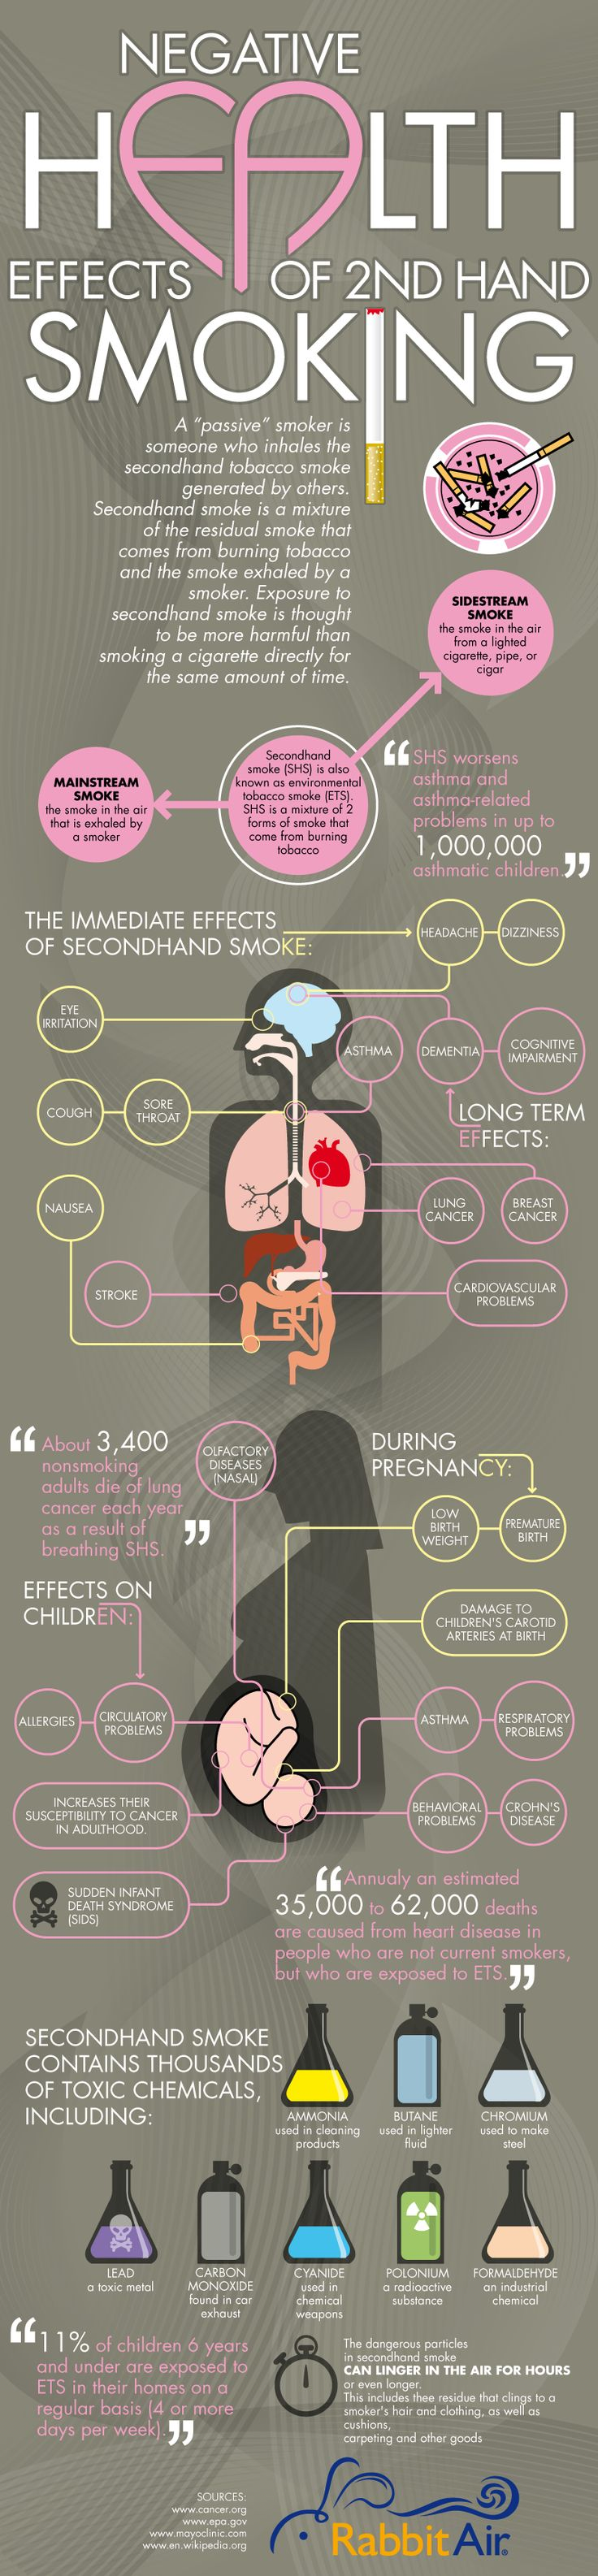 #SecondhandSmoke #Infographic